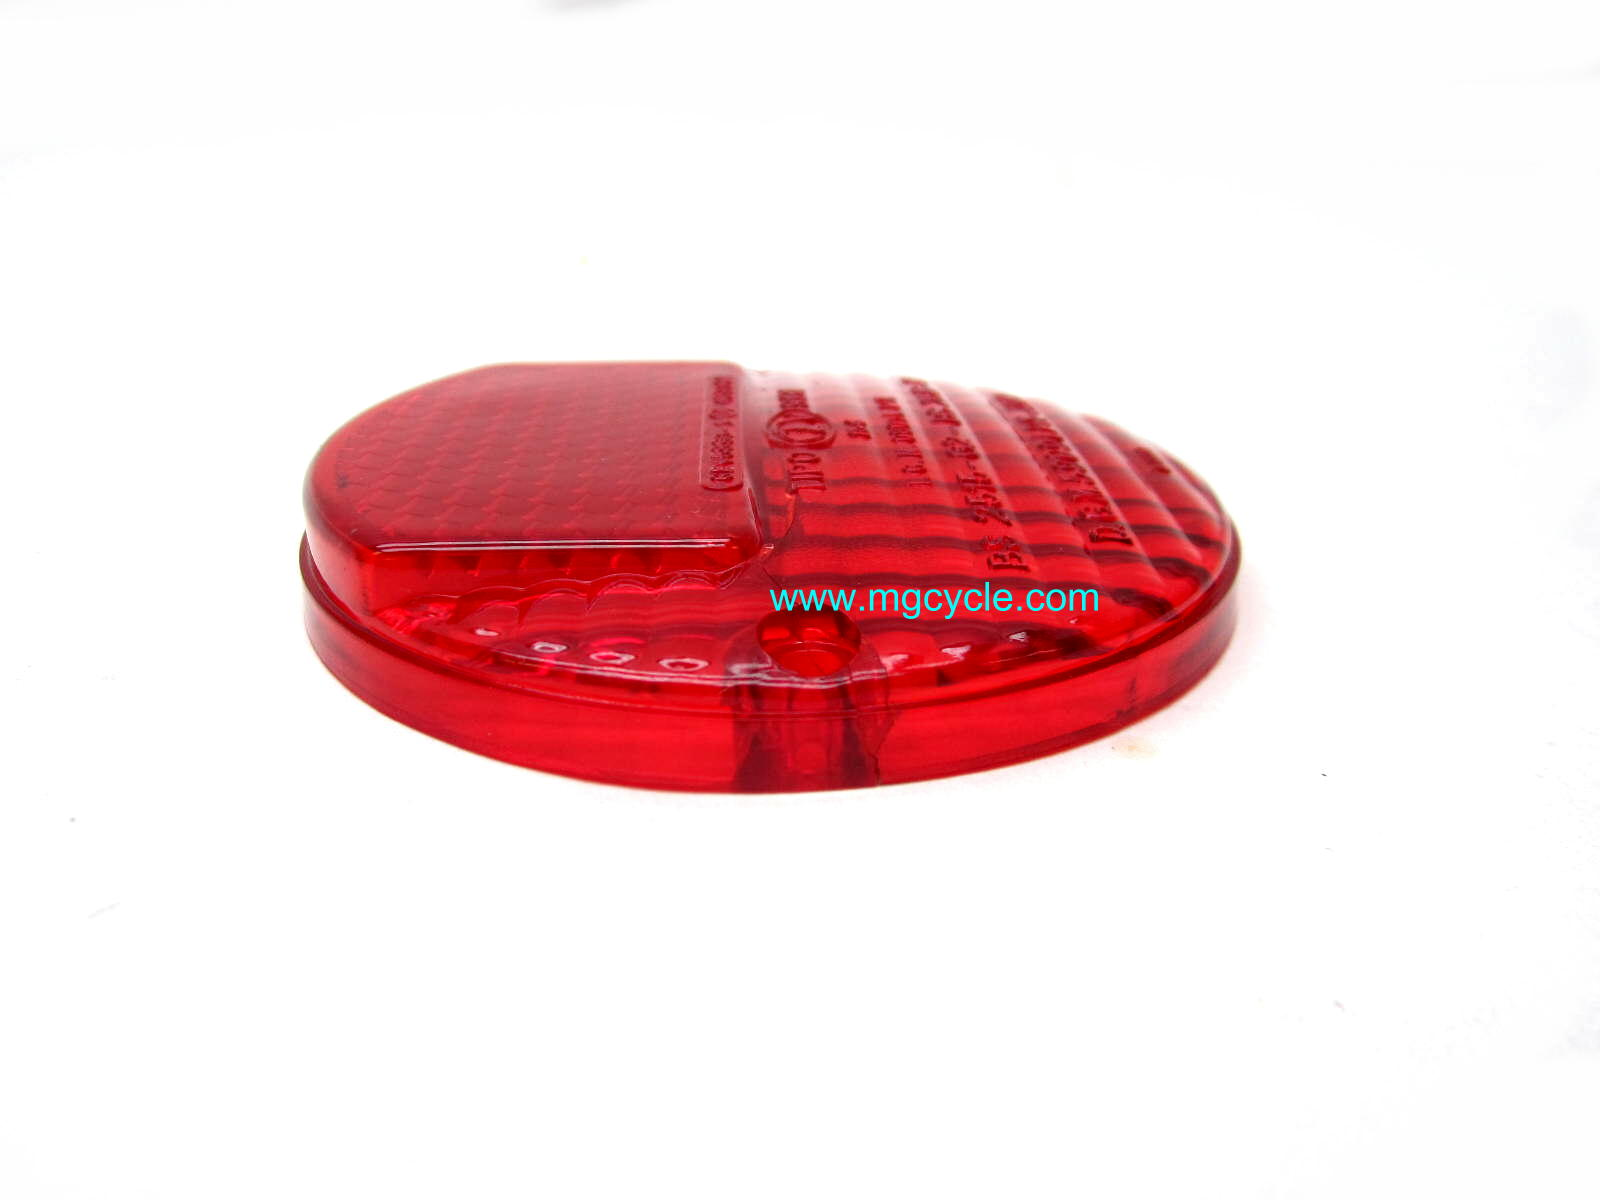 Italian Ambassador Eldorado tail light lens, with reflector